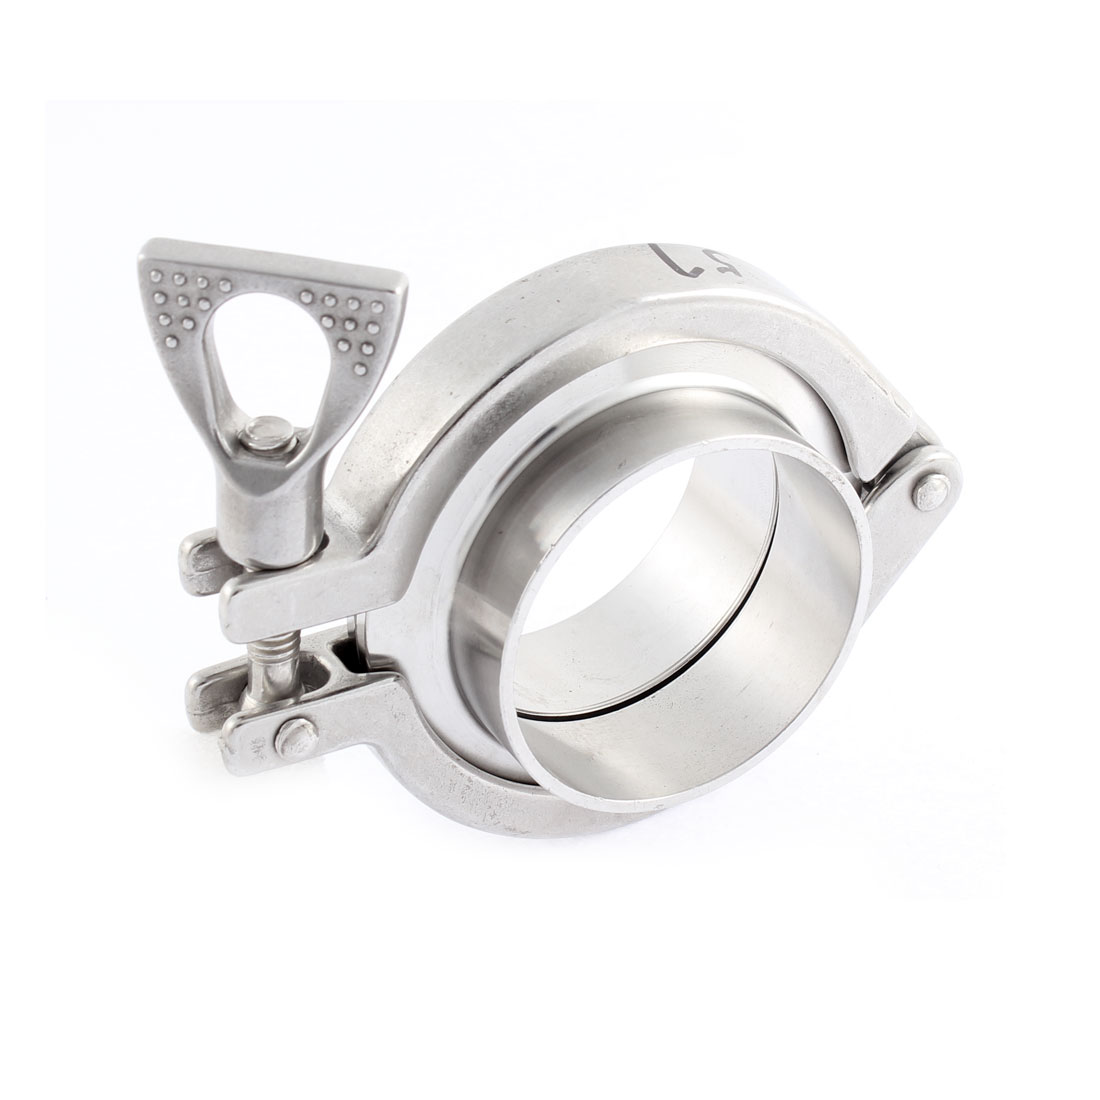 316 Stainless Steel 57mm Dia Tri-clamp Type Hygienic Sanitary Weld Pipe Clamp Ferrule Set